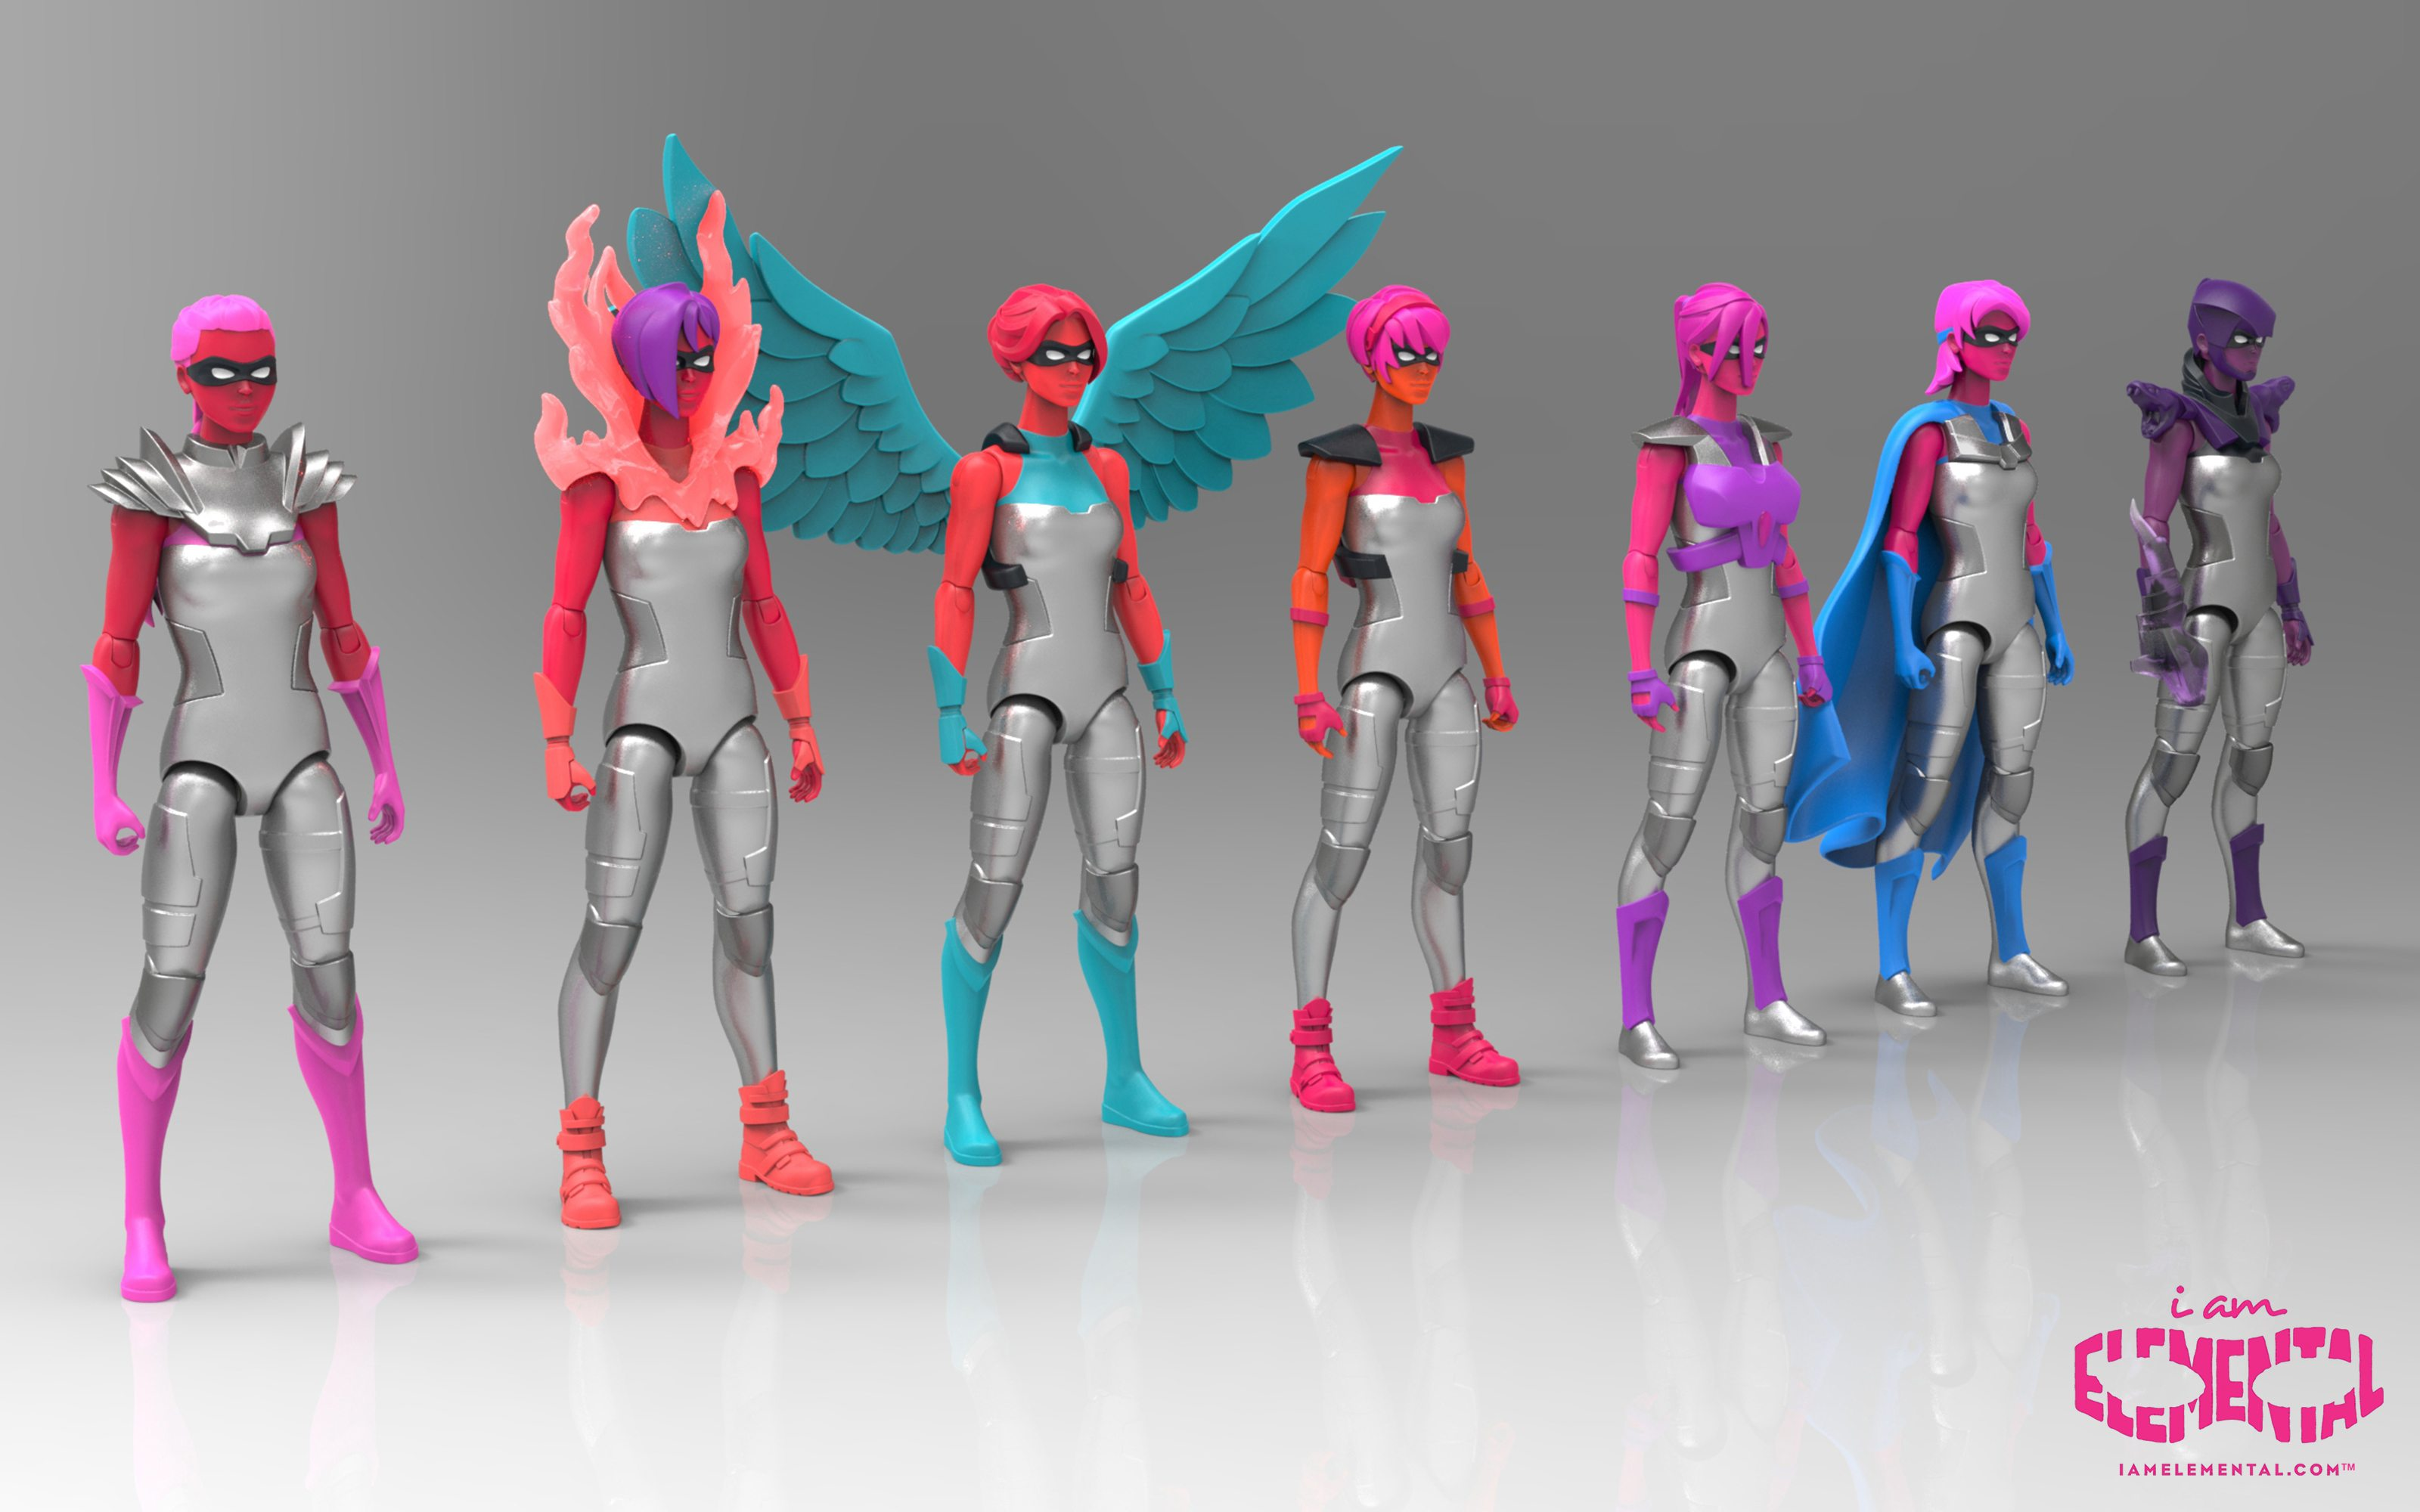 Toy Figures For Boys : Iamelemental female action figures for boys and girls